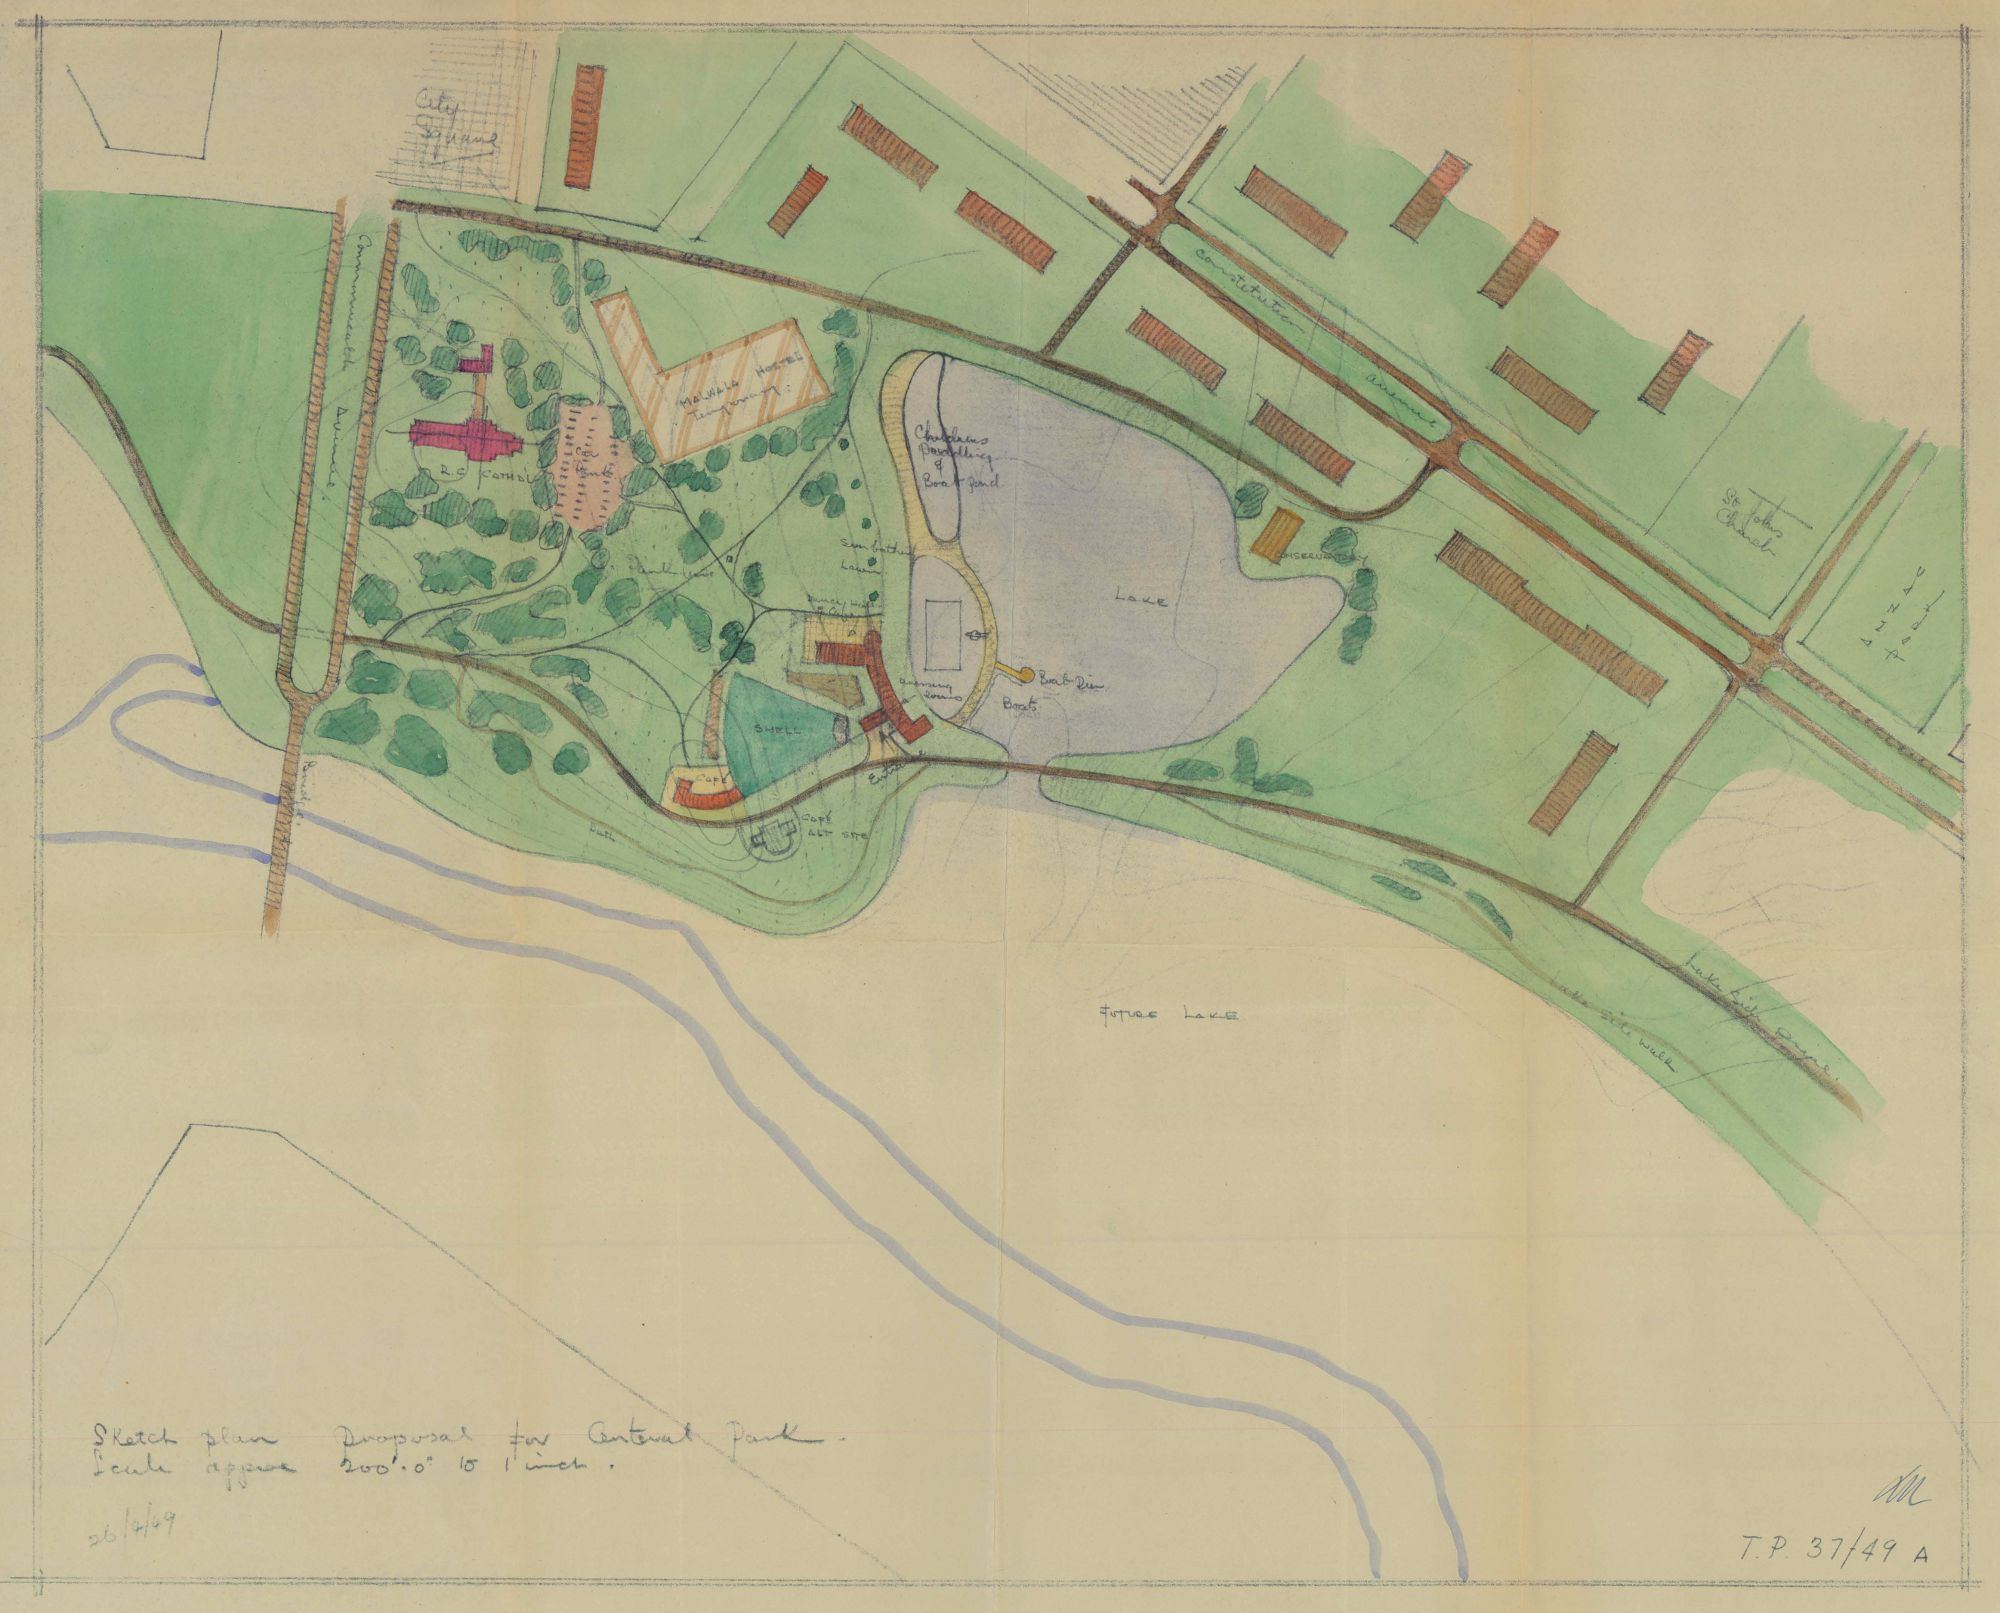 1949 proposal plan for Commonwealth Park TP37/49A